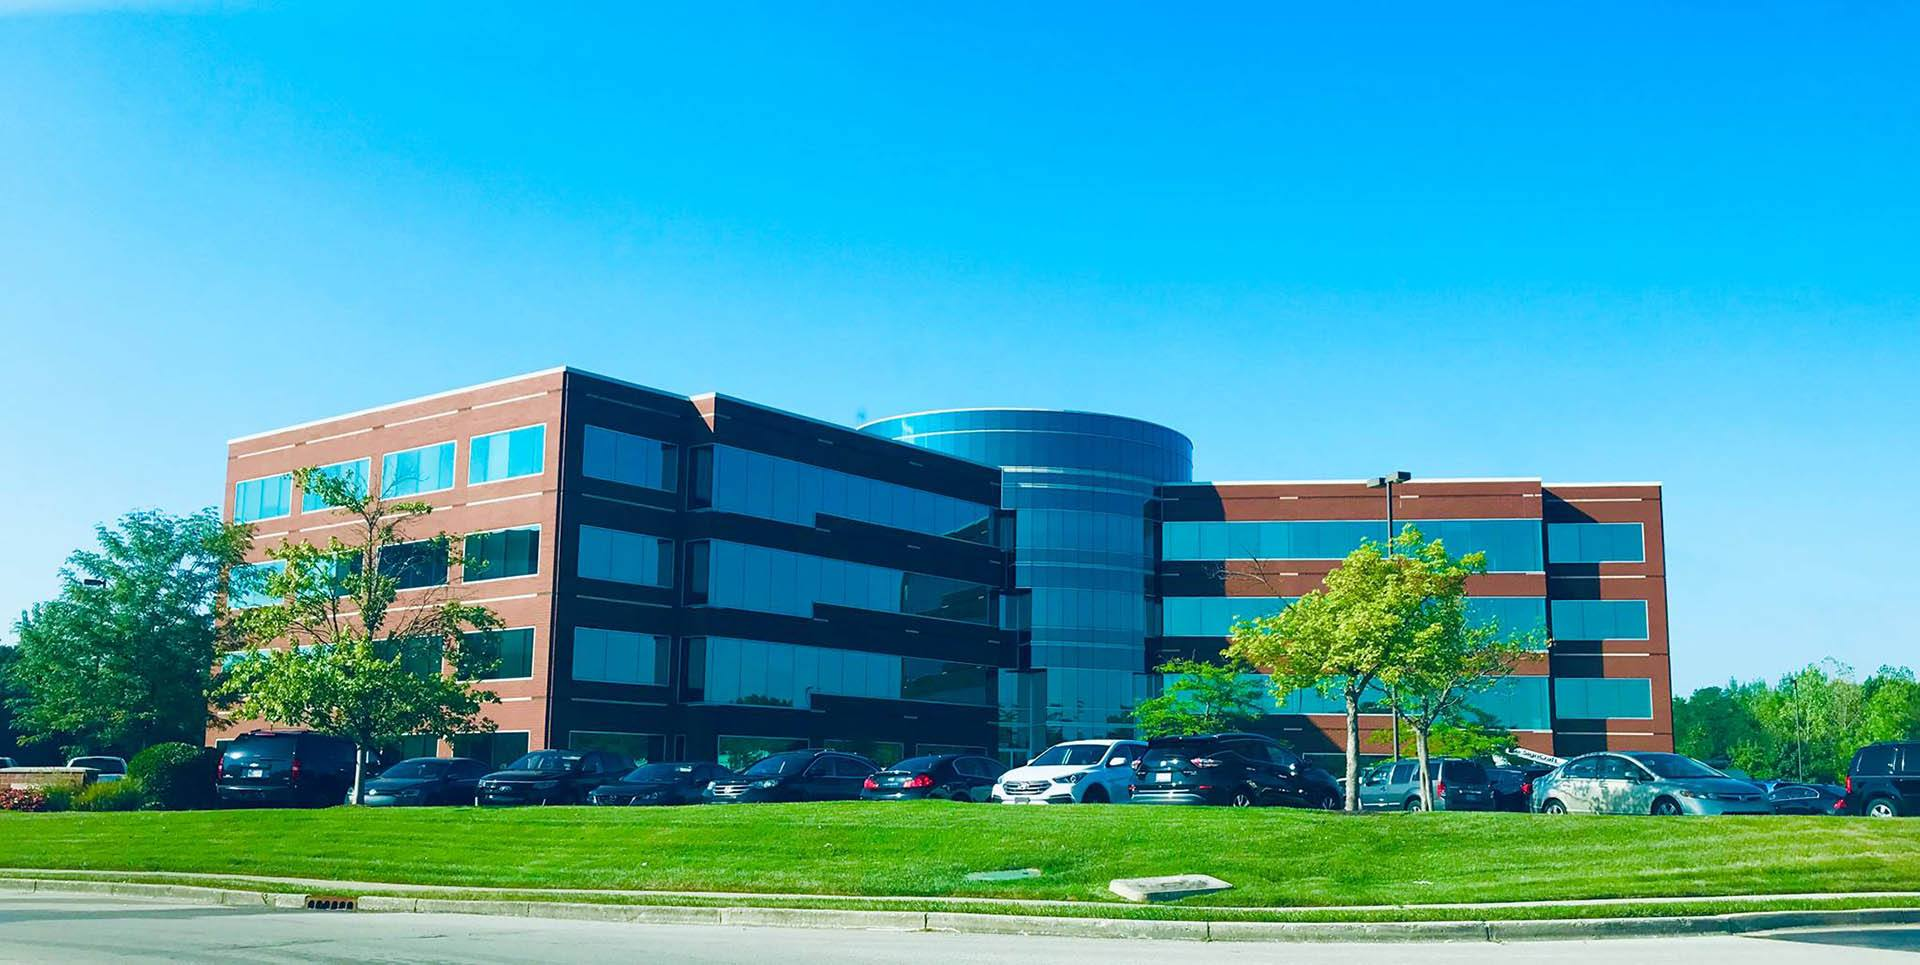 Image of our headquarters in Indianapolis - Virtual Office by Design